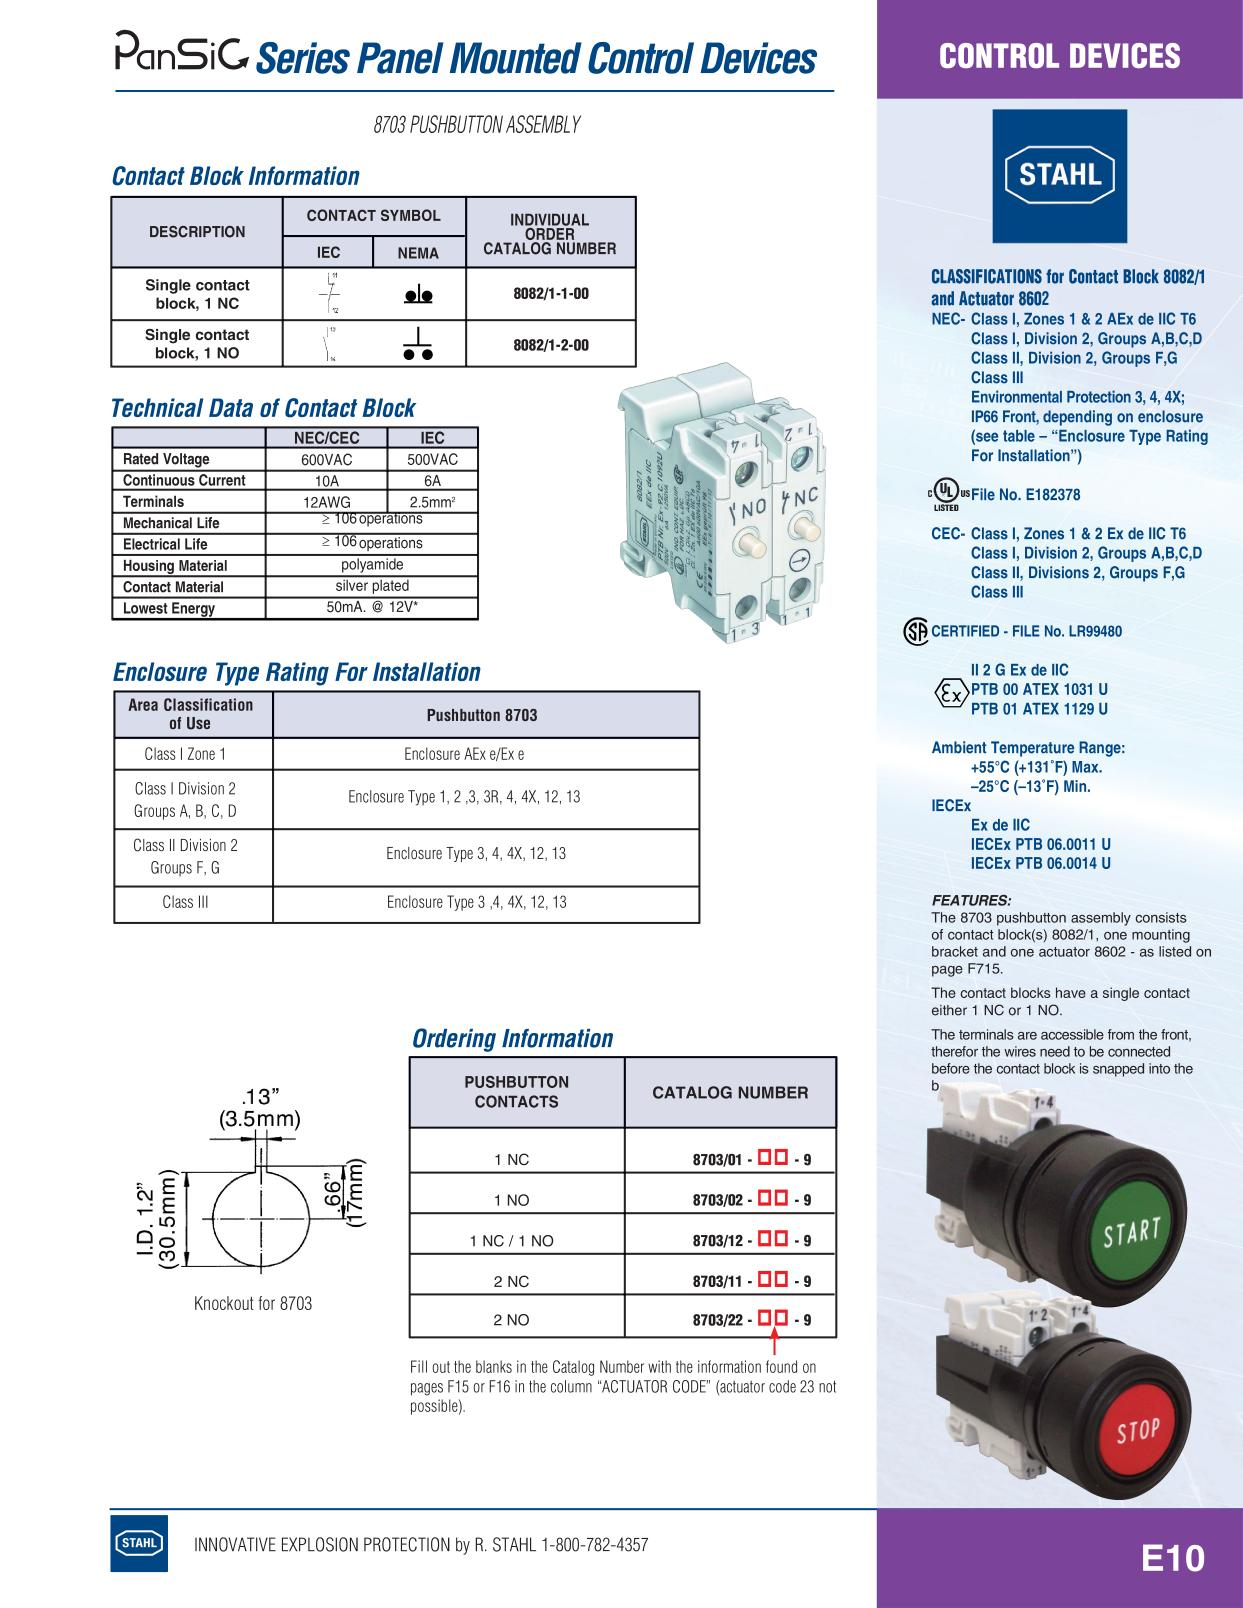 Control Devices - R Stahl Electrical Catalog 9016 Page E10